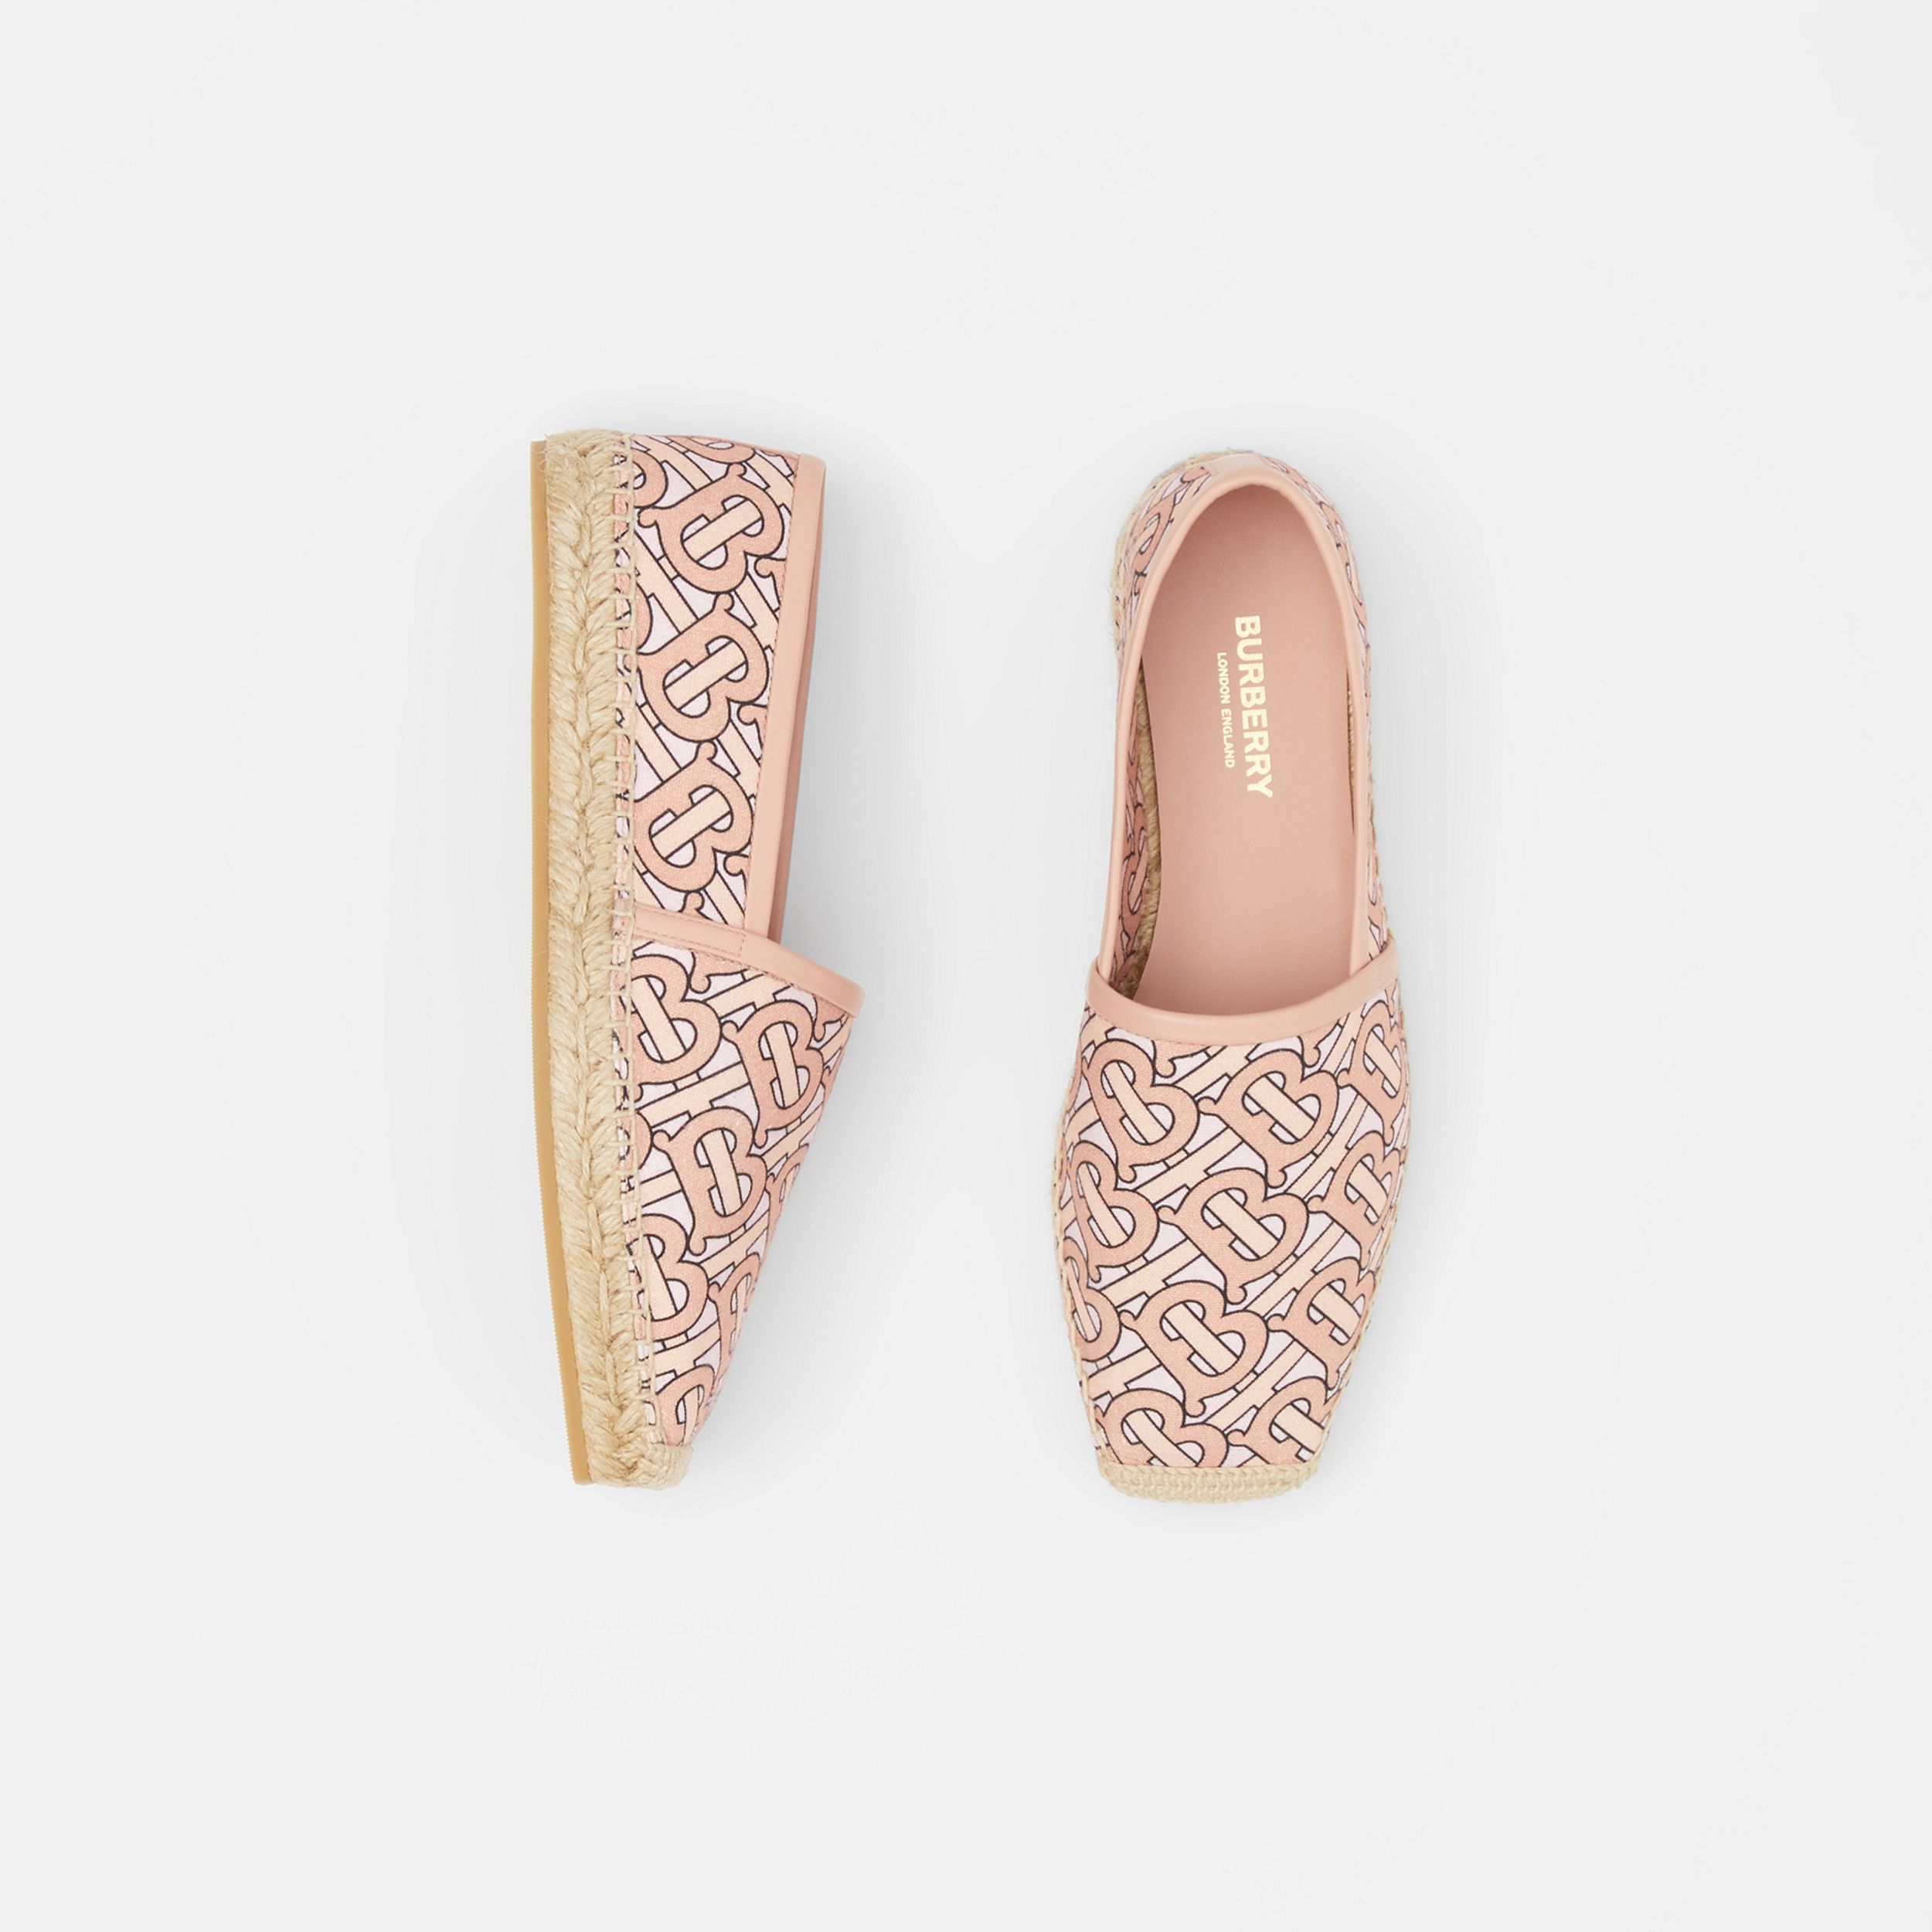 Monogram Print Cotton Canvas Espadrilles in Pale Copper Pink - Women | Burberry Canada - 1